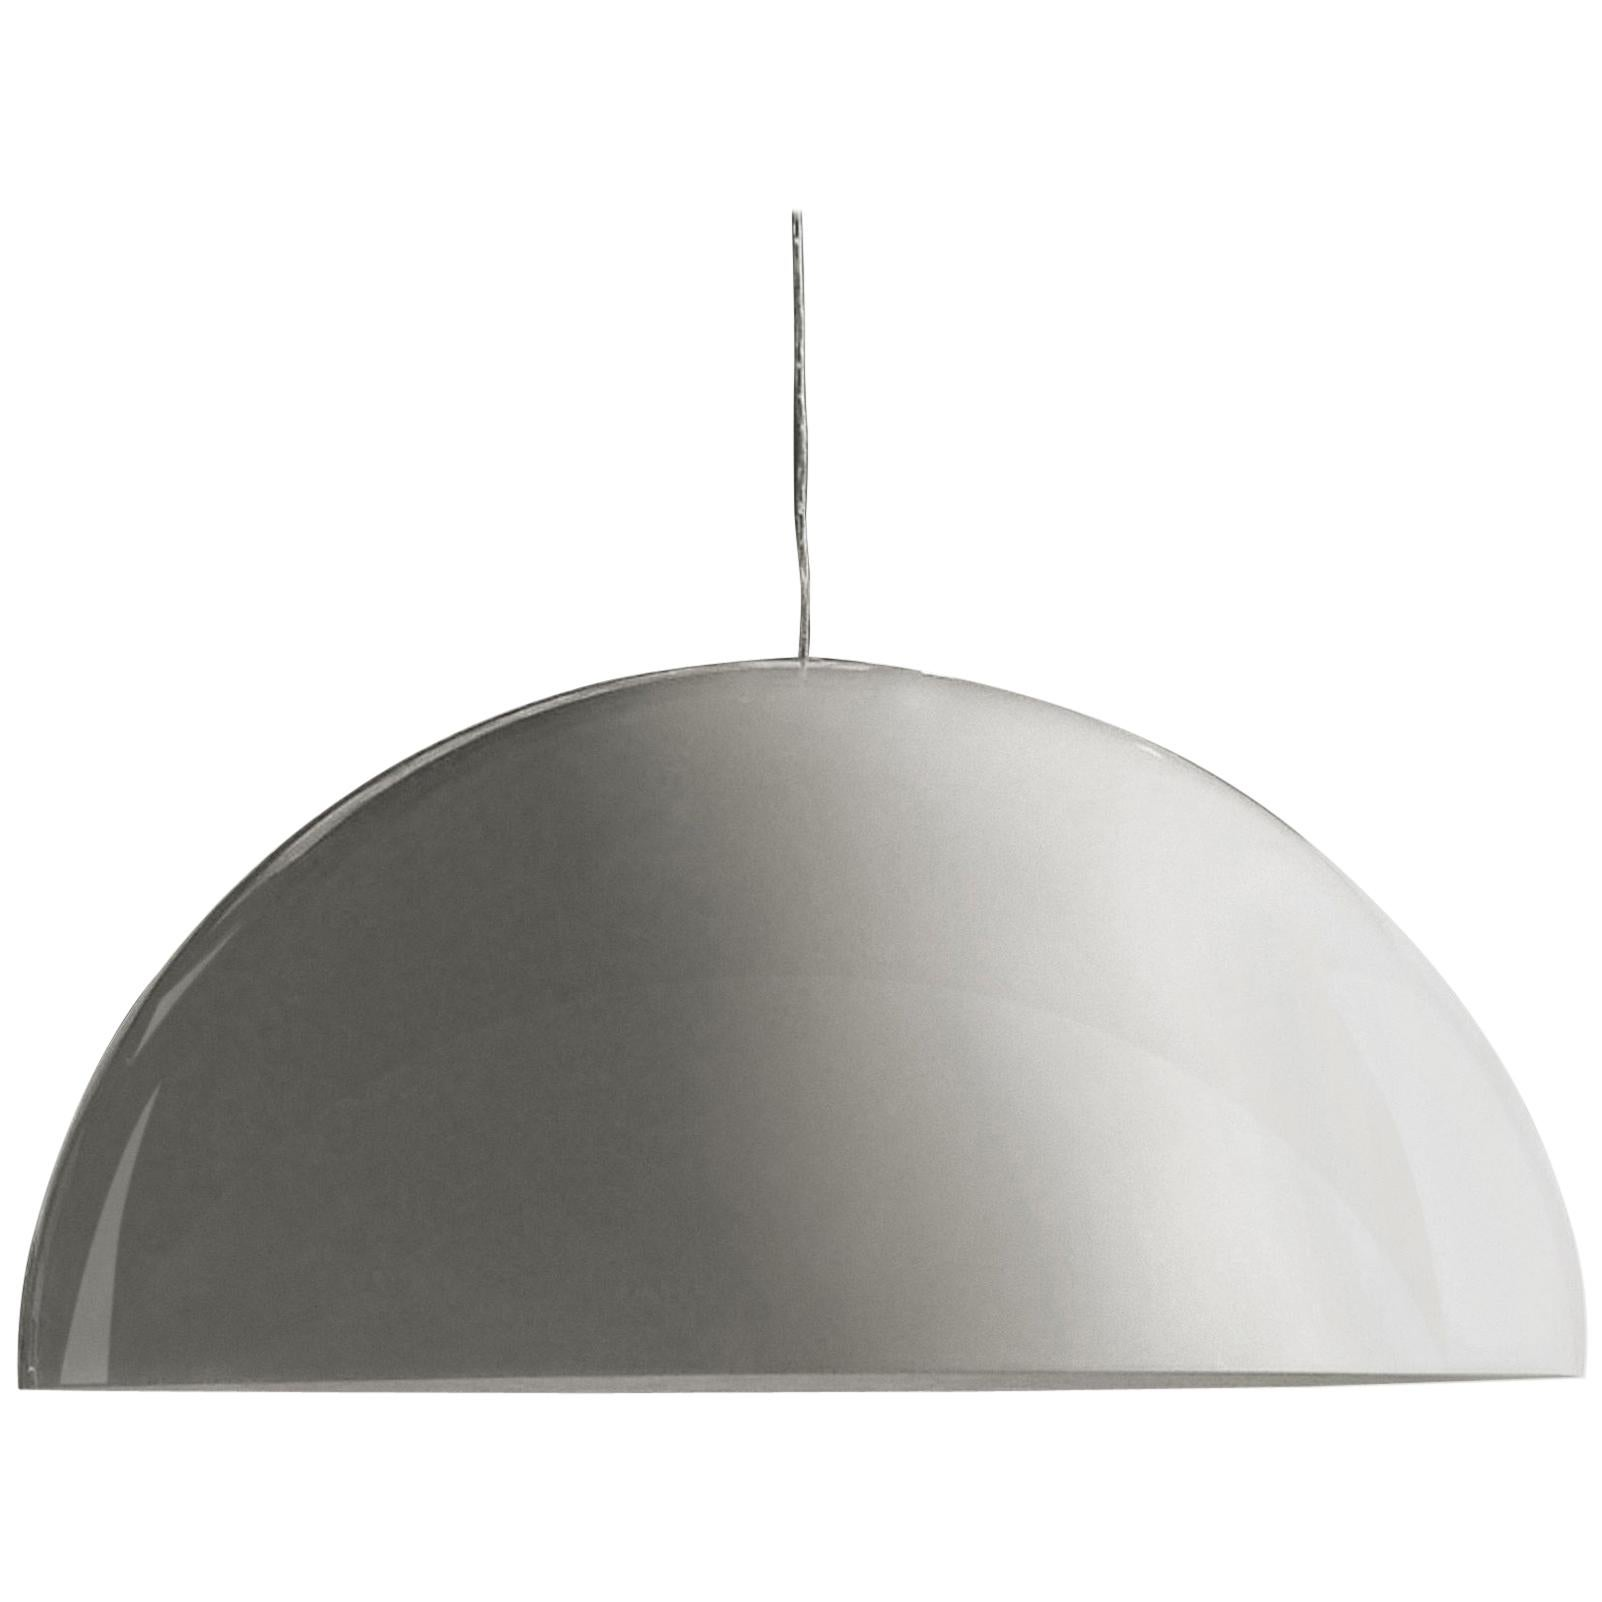 Vico Magistretti Suspension Lamp 'Sonora' 493 Painted White by Oluce